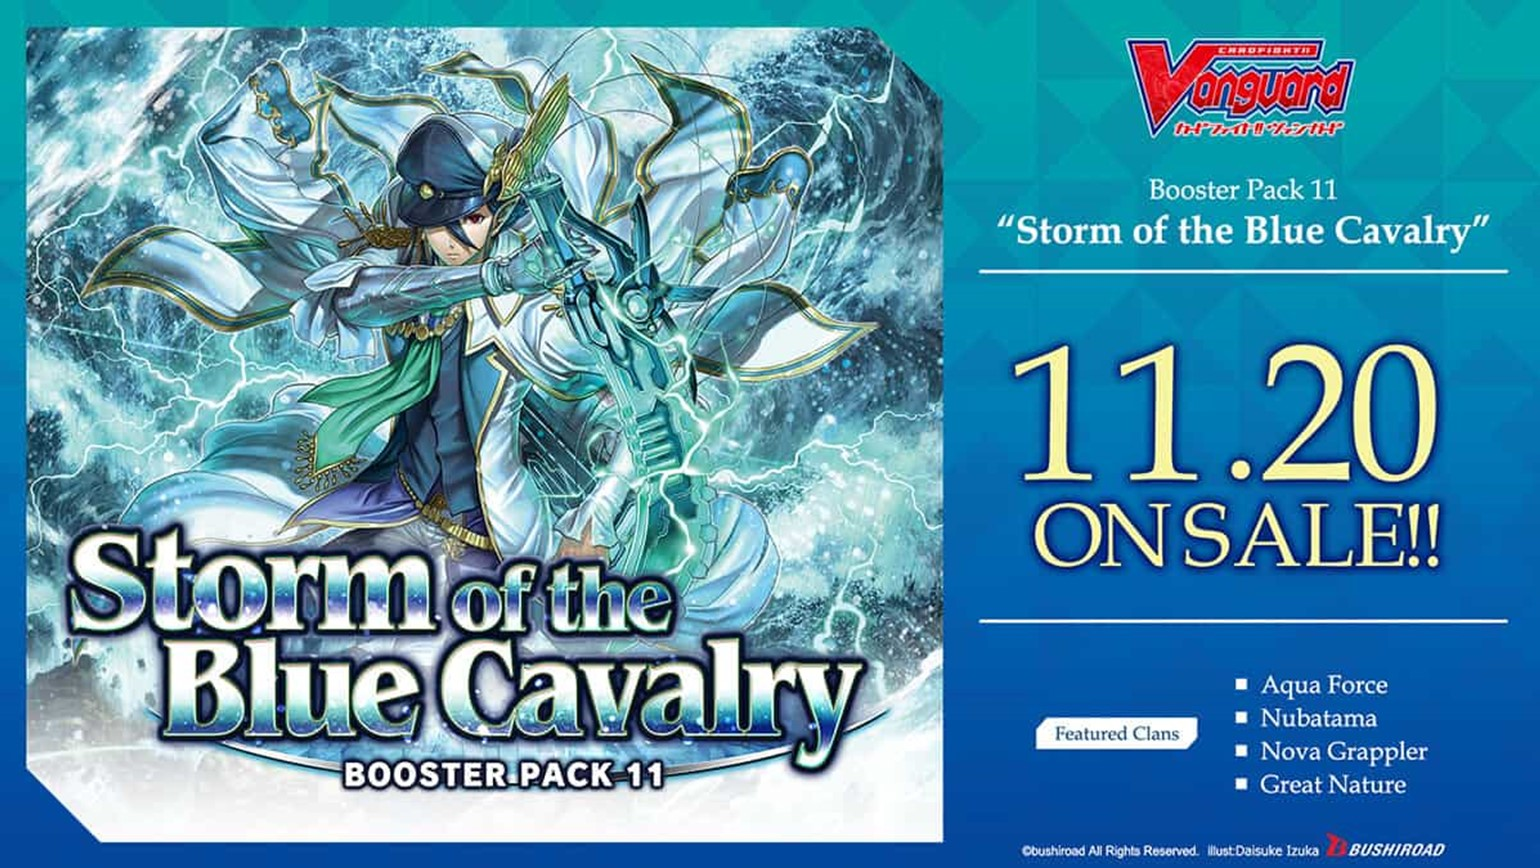 New English Edition Cardfight!! Vanguard Booster Pack Vol. 11: Storm of the Blue Cavalry is Coming to Stores on November 20th!